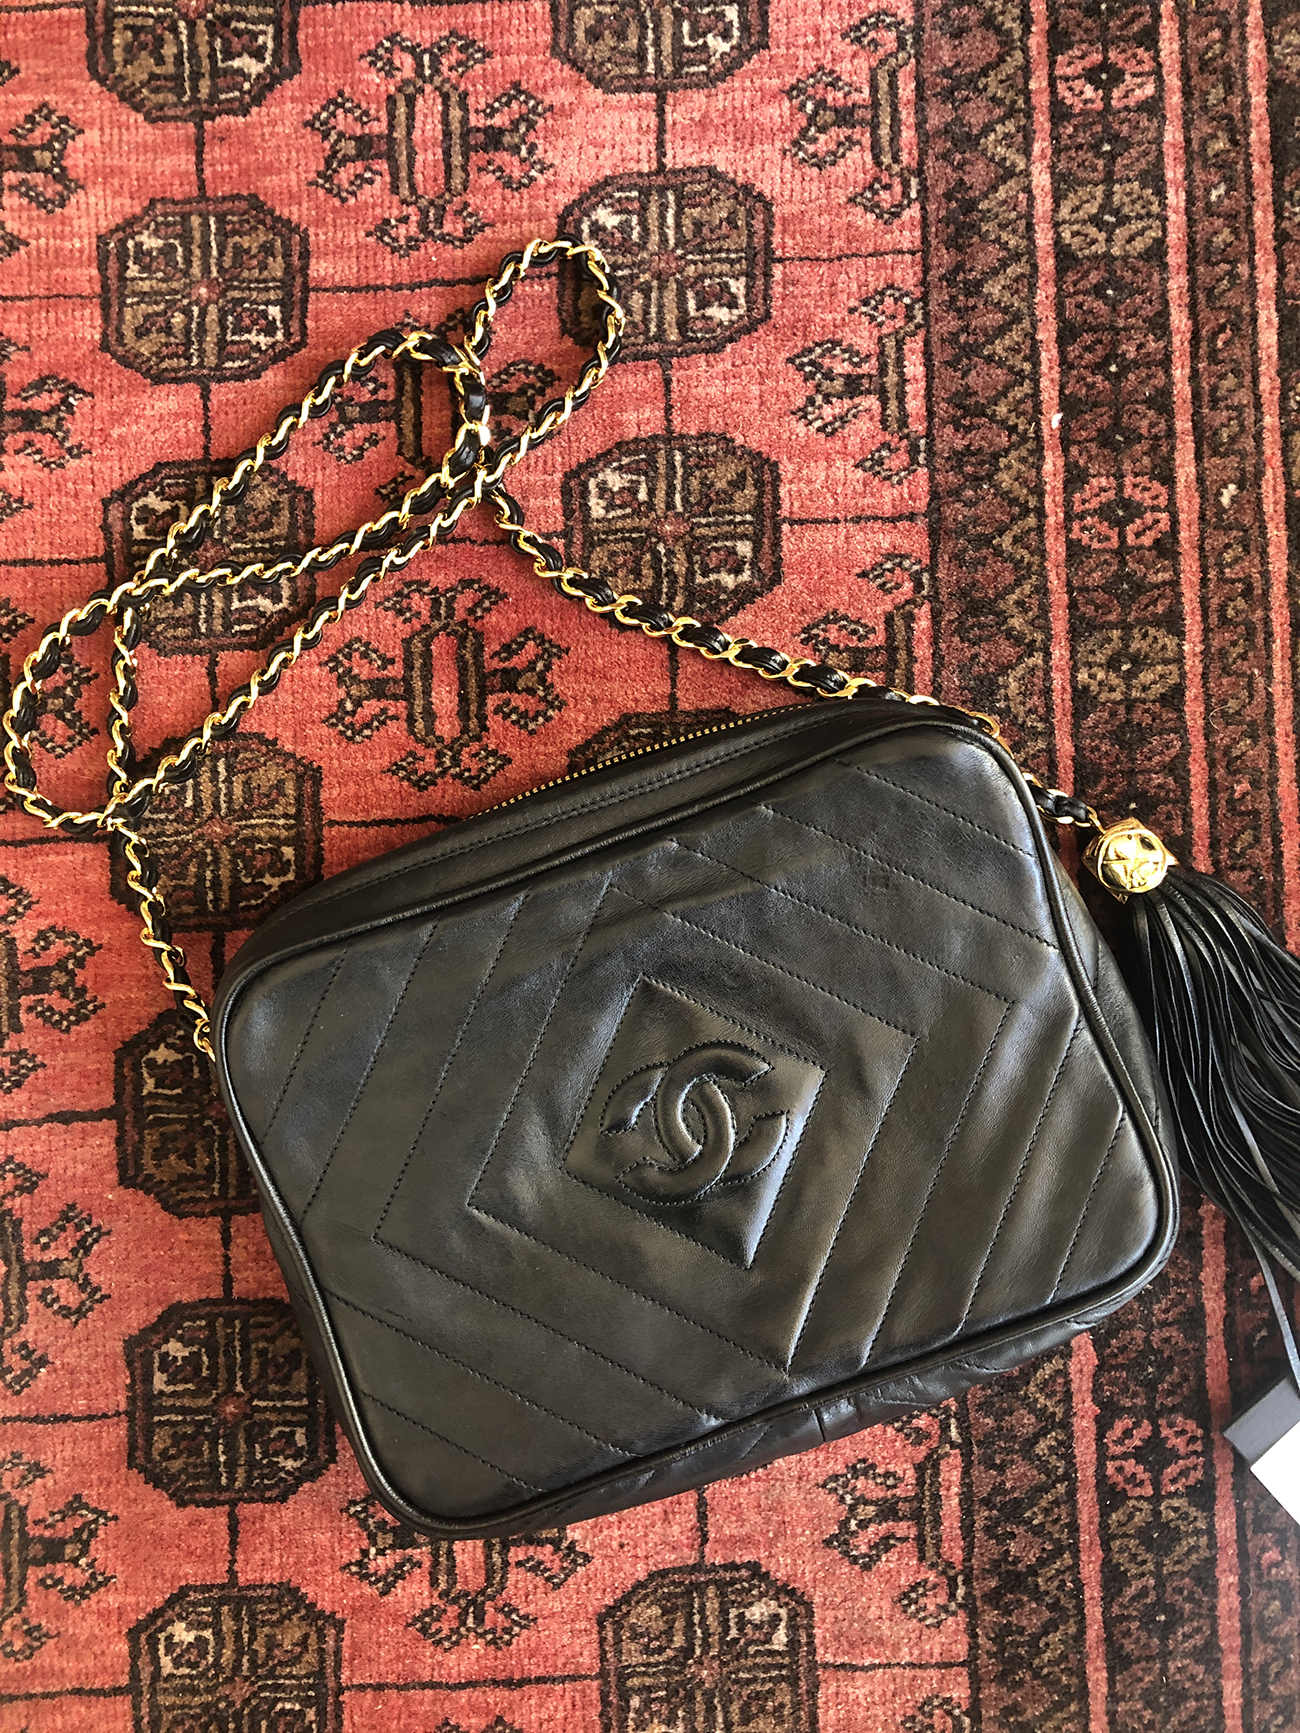 vintage chanel bag spa review